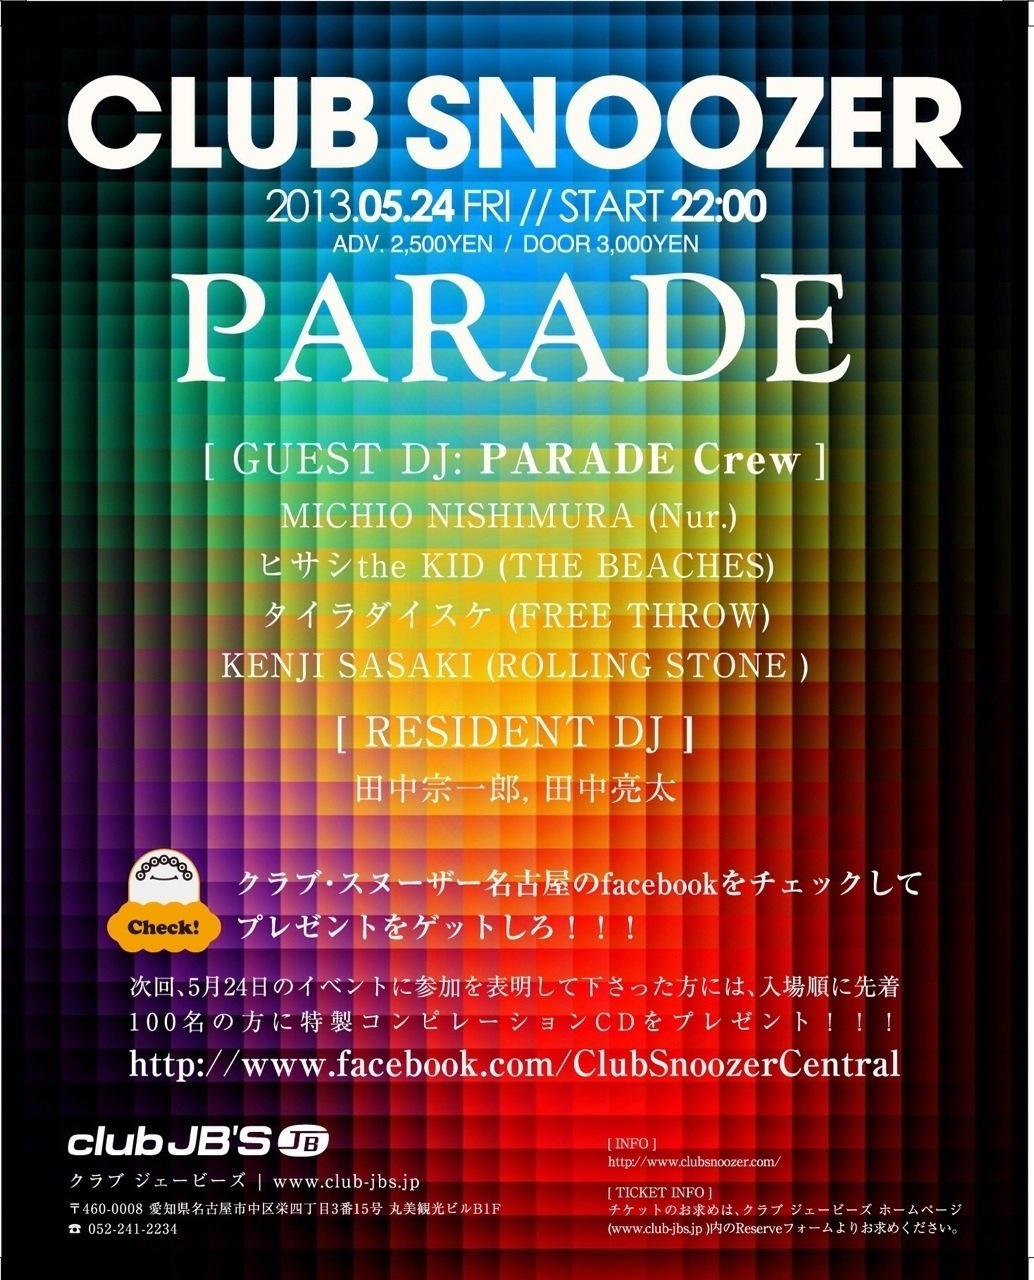 5/24 (FRI) 「CLUB SNOOZER meets Parade」 @名古屋 CLUB JB'S_e0153779_101118.jpg